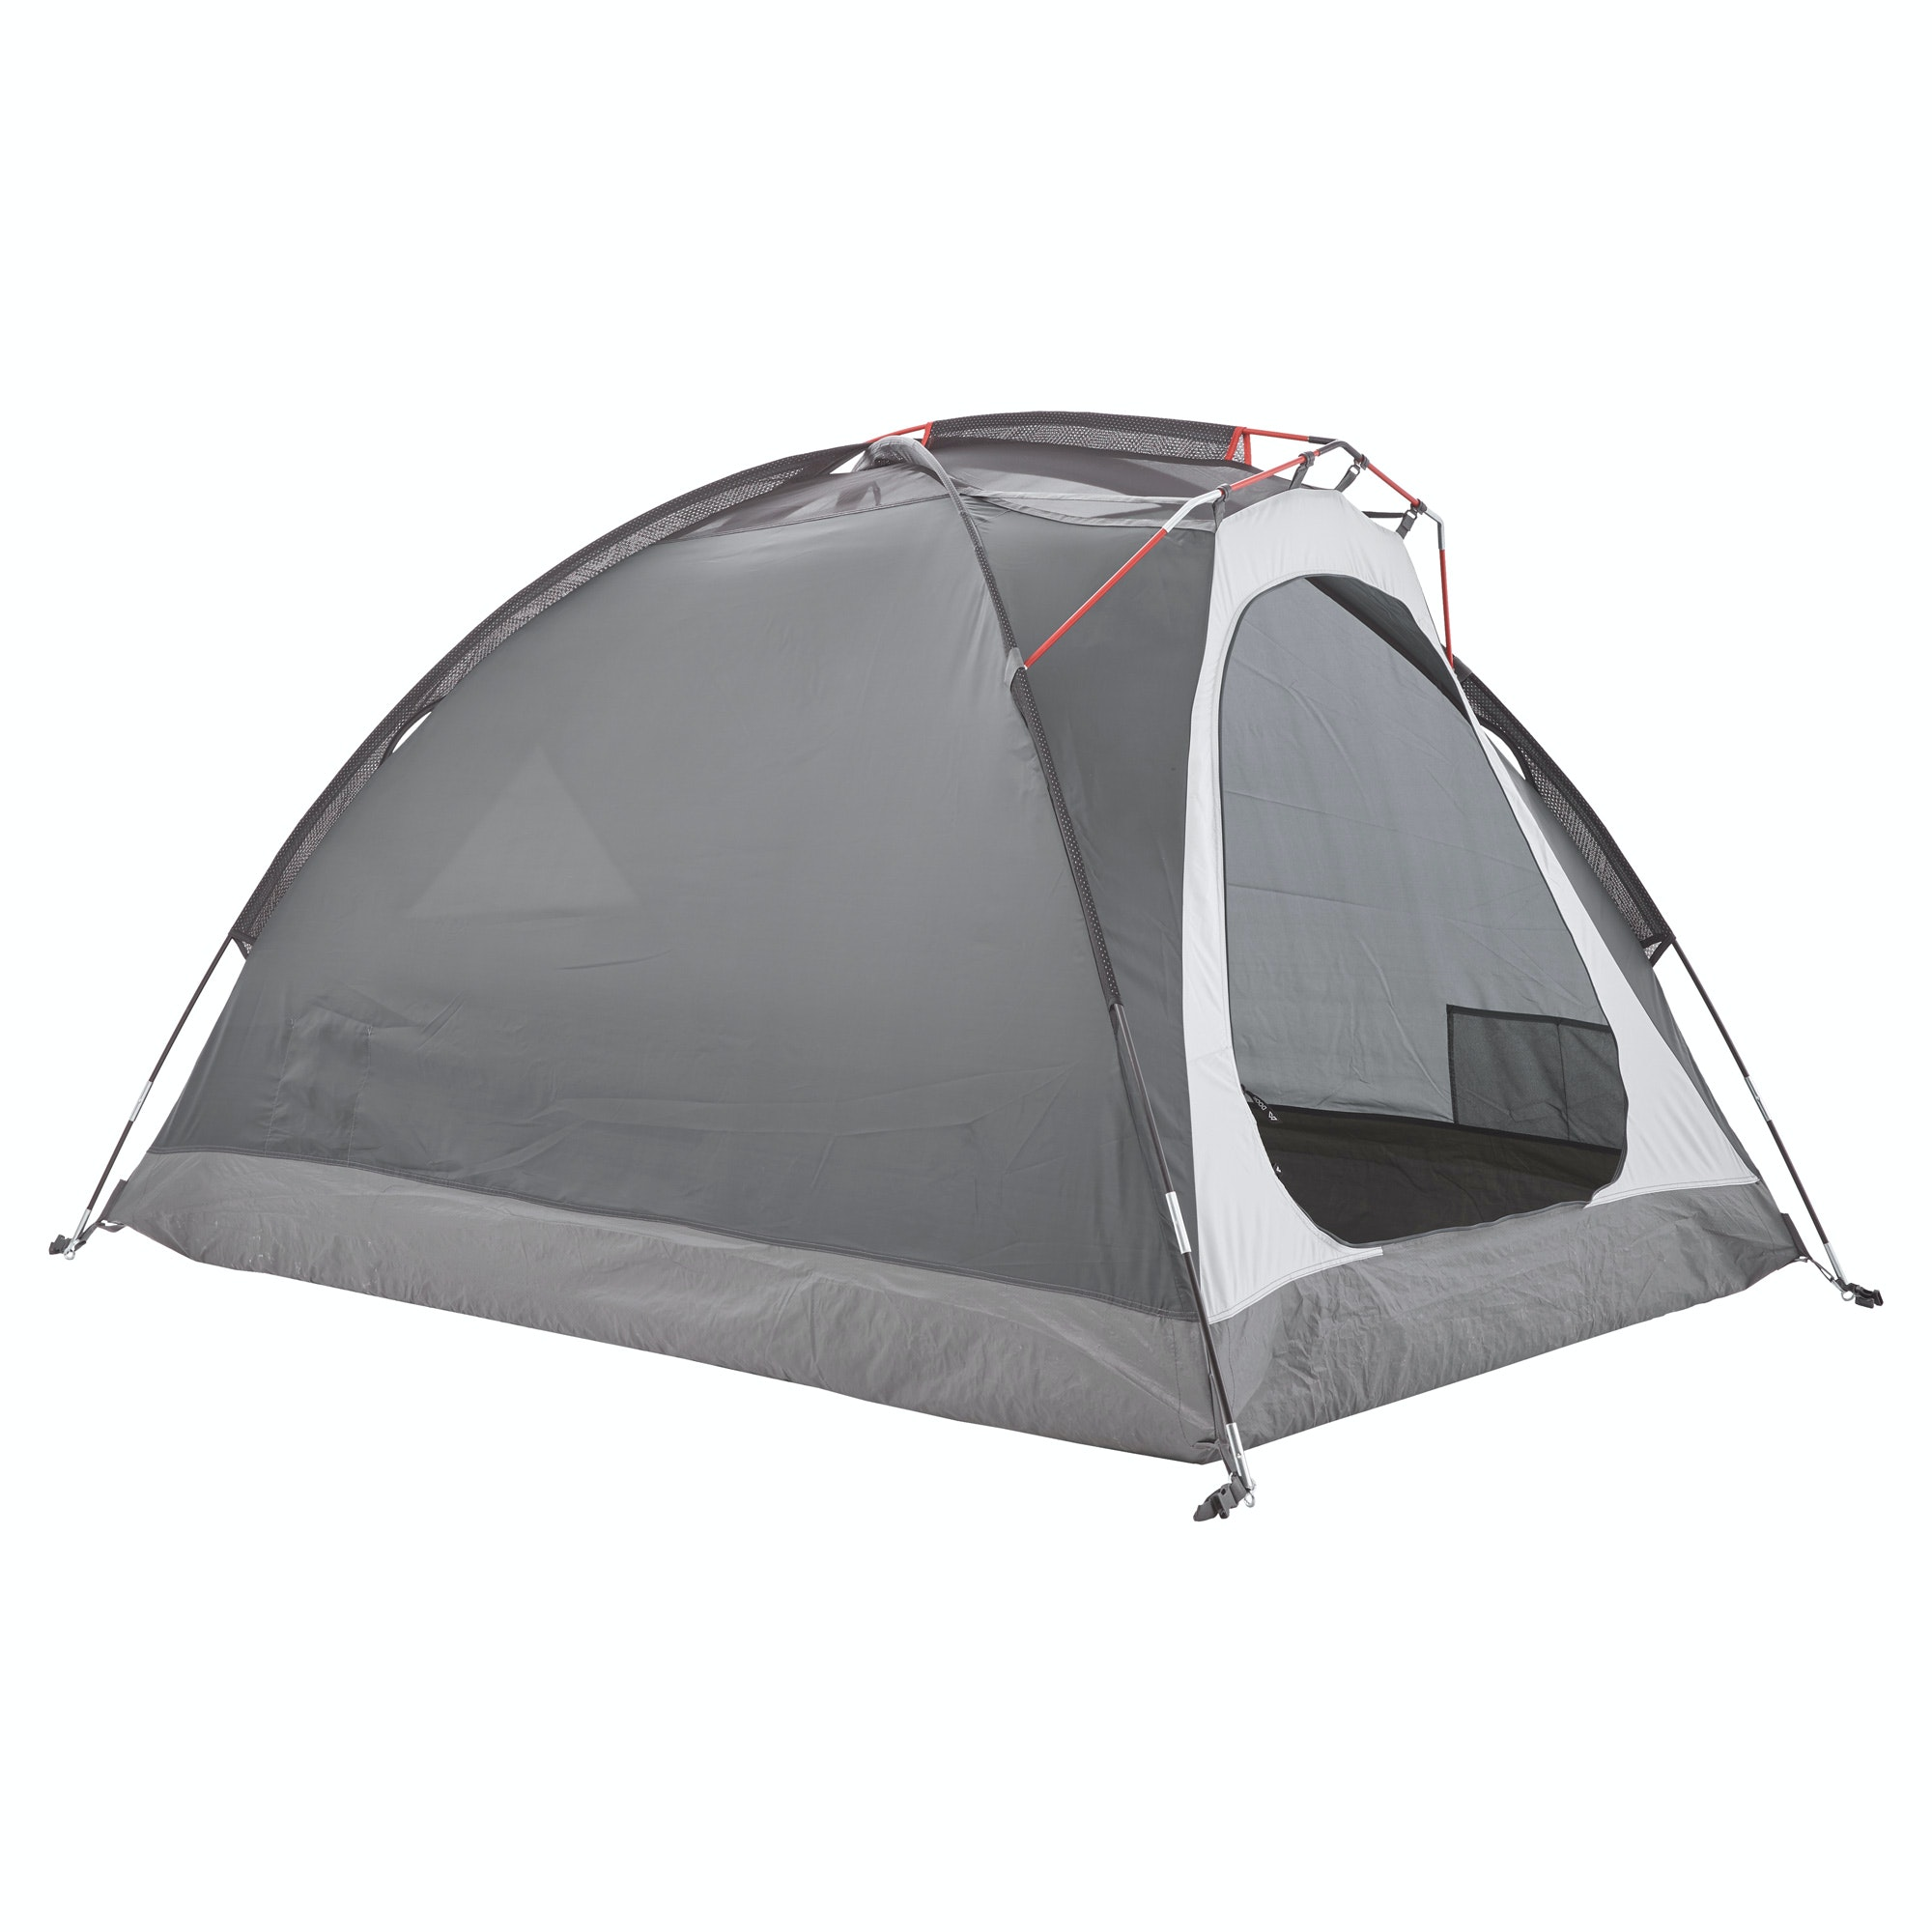 H41  sc 1 st  Kathmandu & Retreat 40 2 Person Tent - Warm Grey/Sunset